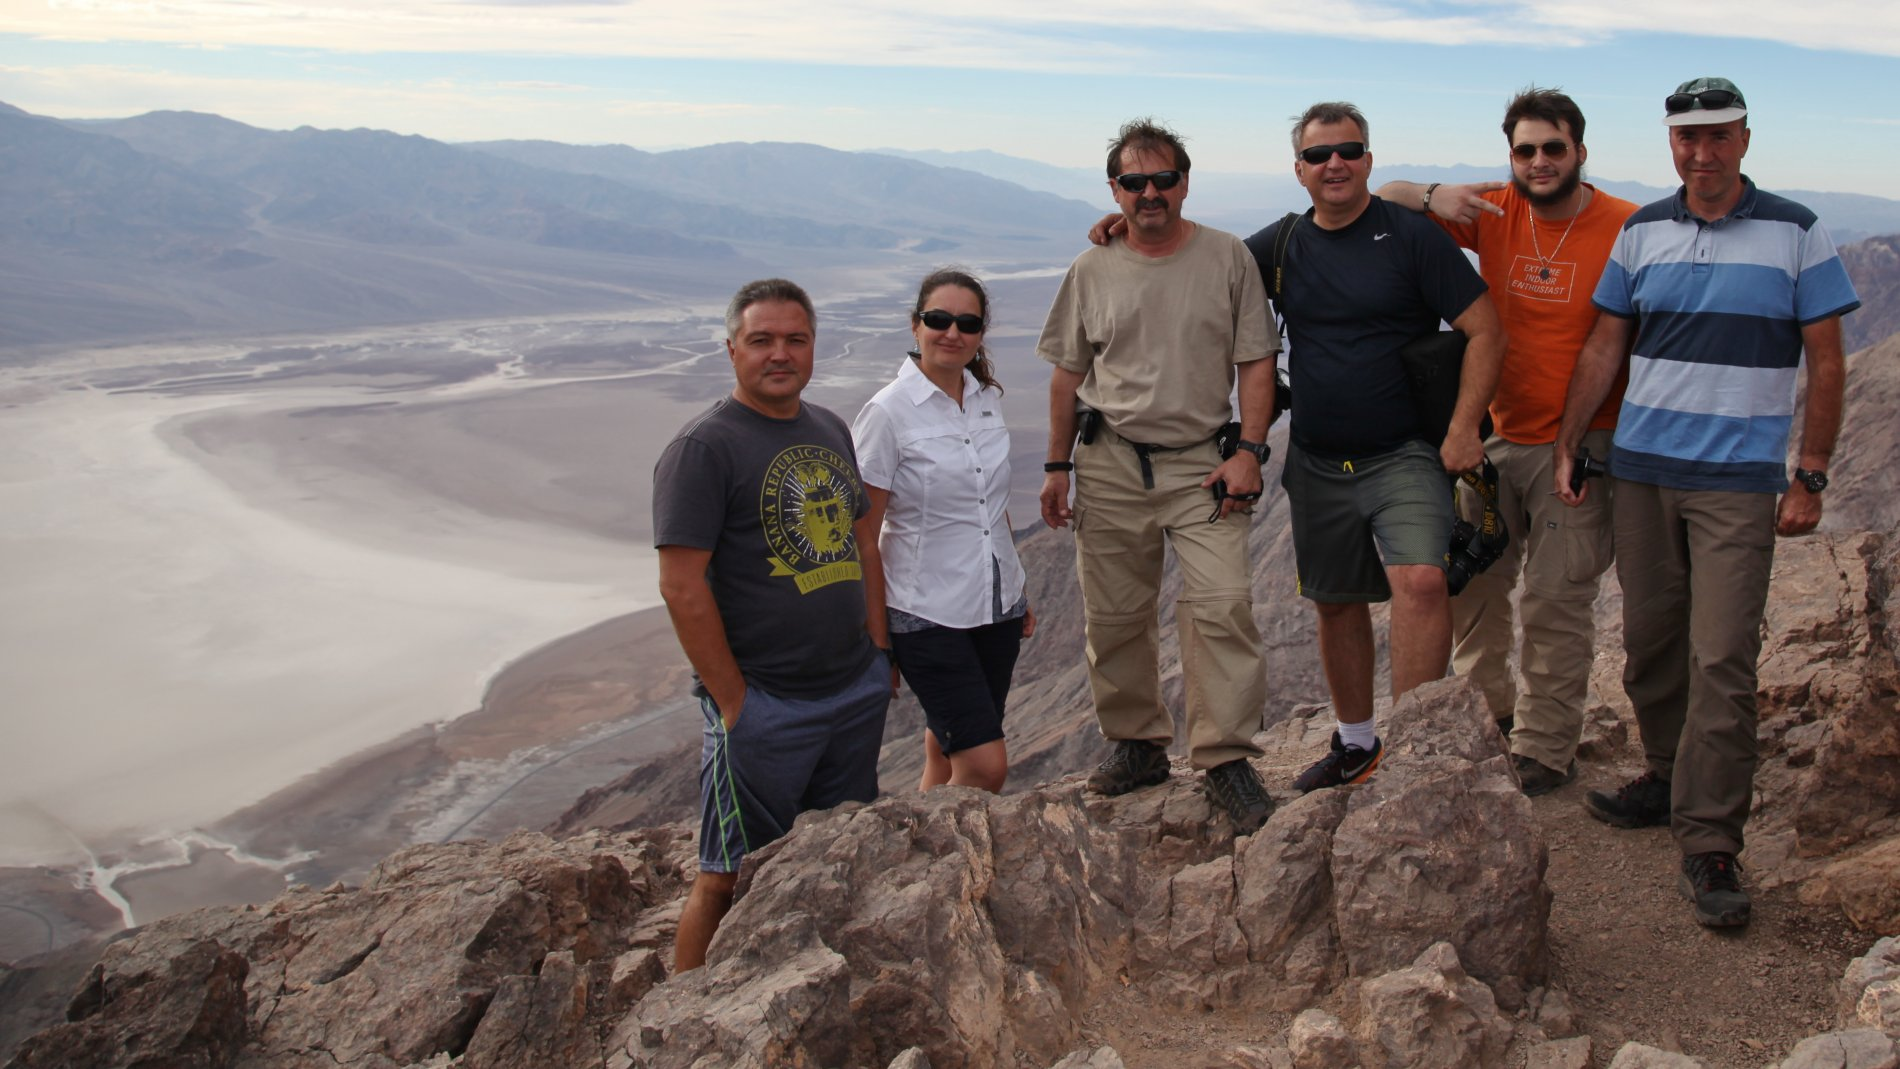 IMG_1100.JPG: Death Valley